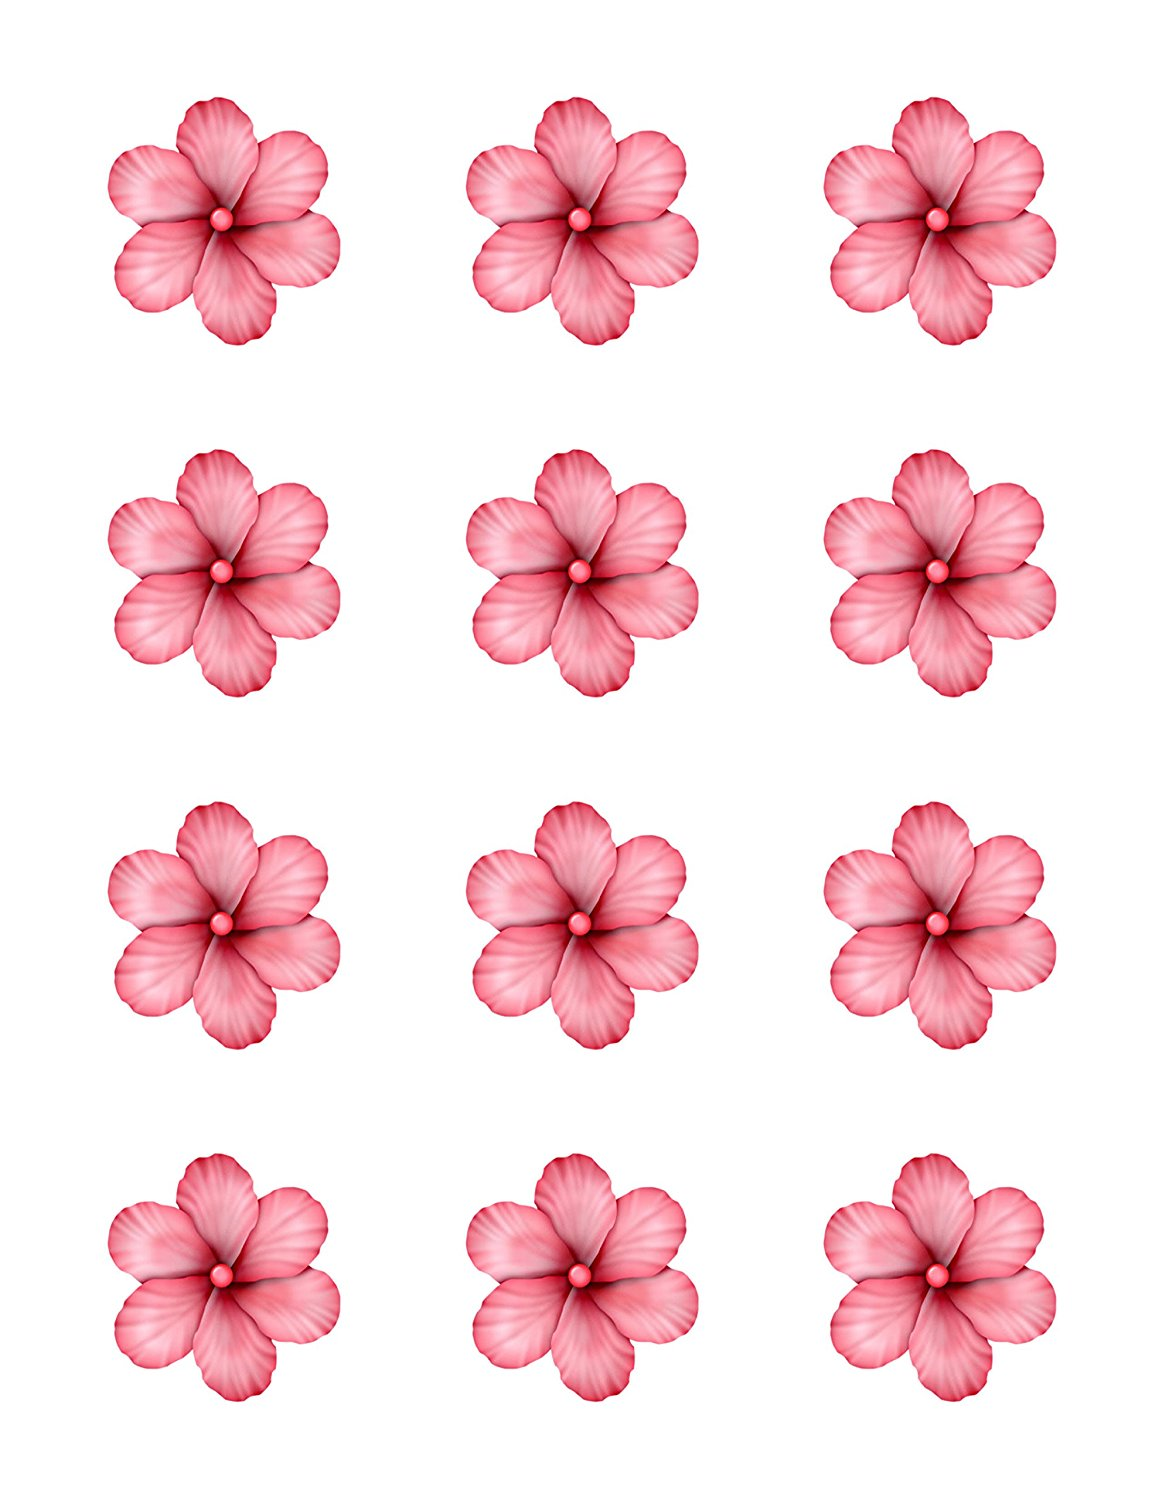 Light pink hibiscus flowers edible image cupcake toppers set of light pink hibiscus flowers edible image cupcake toppers set of 12 precut 2 round flower adventures izmirmasajfo